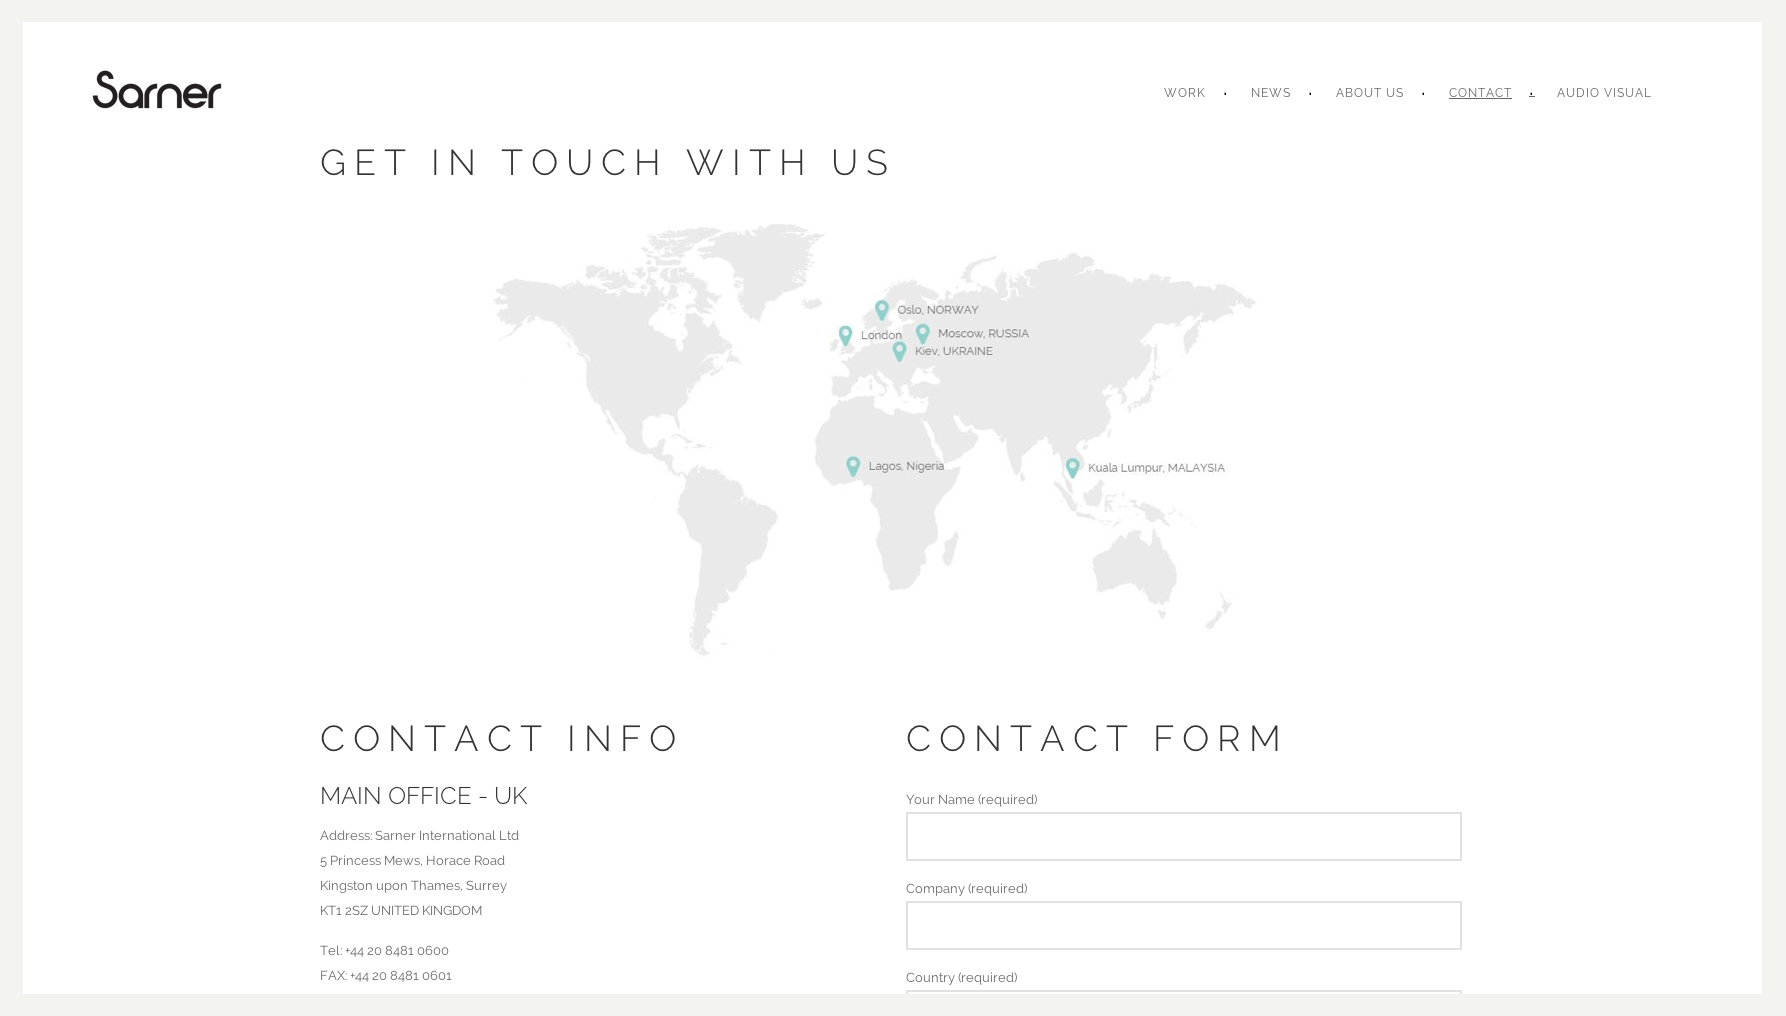 Sarner website design and build by collective digital